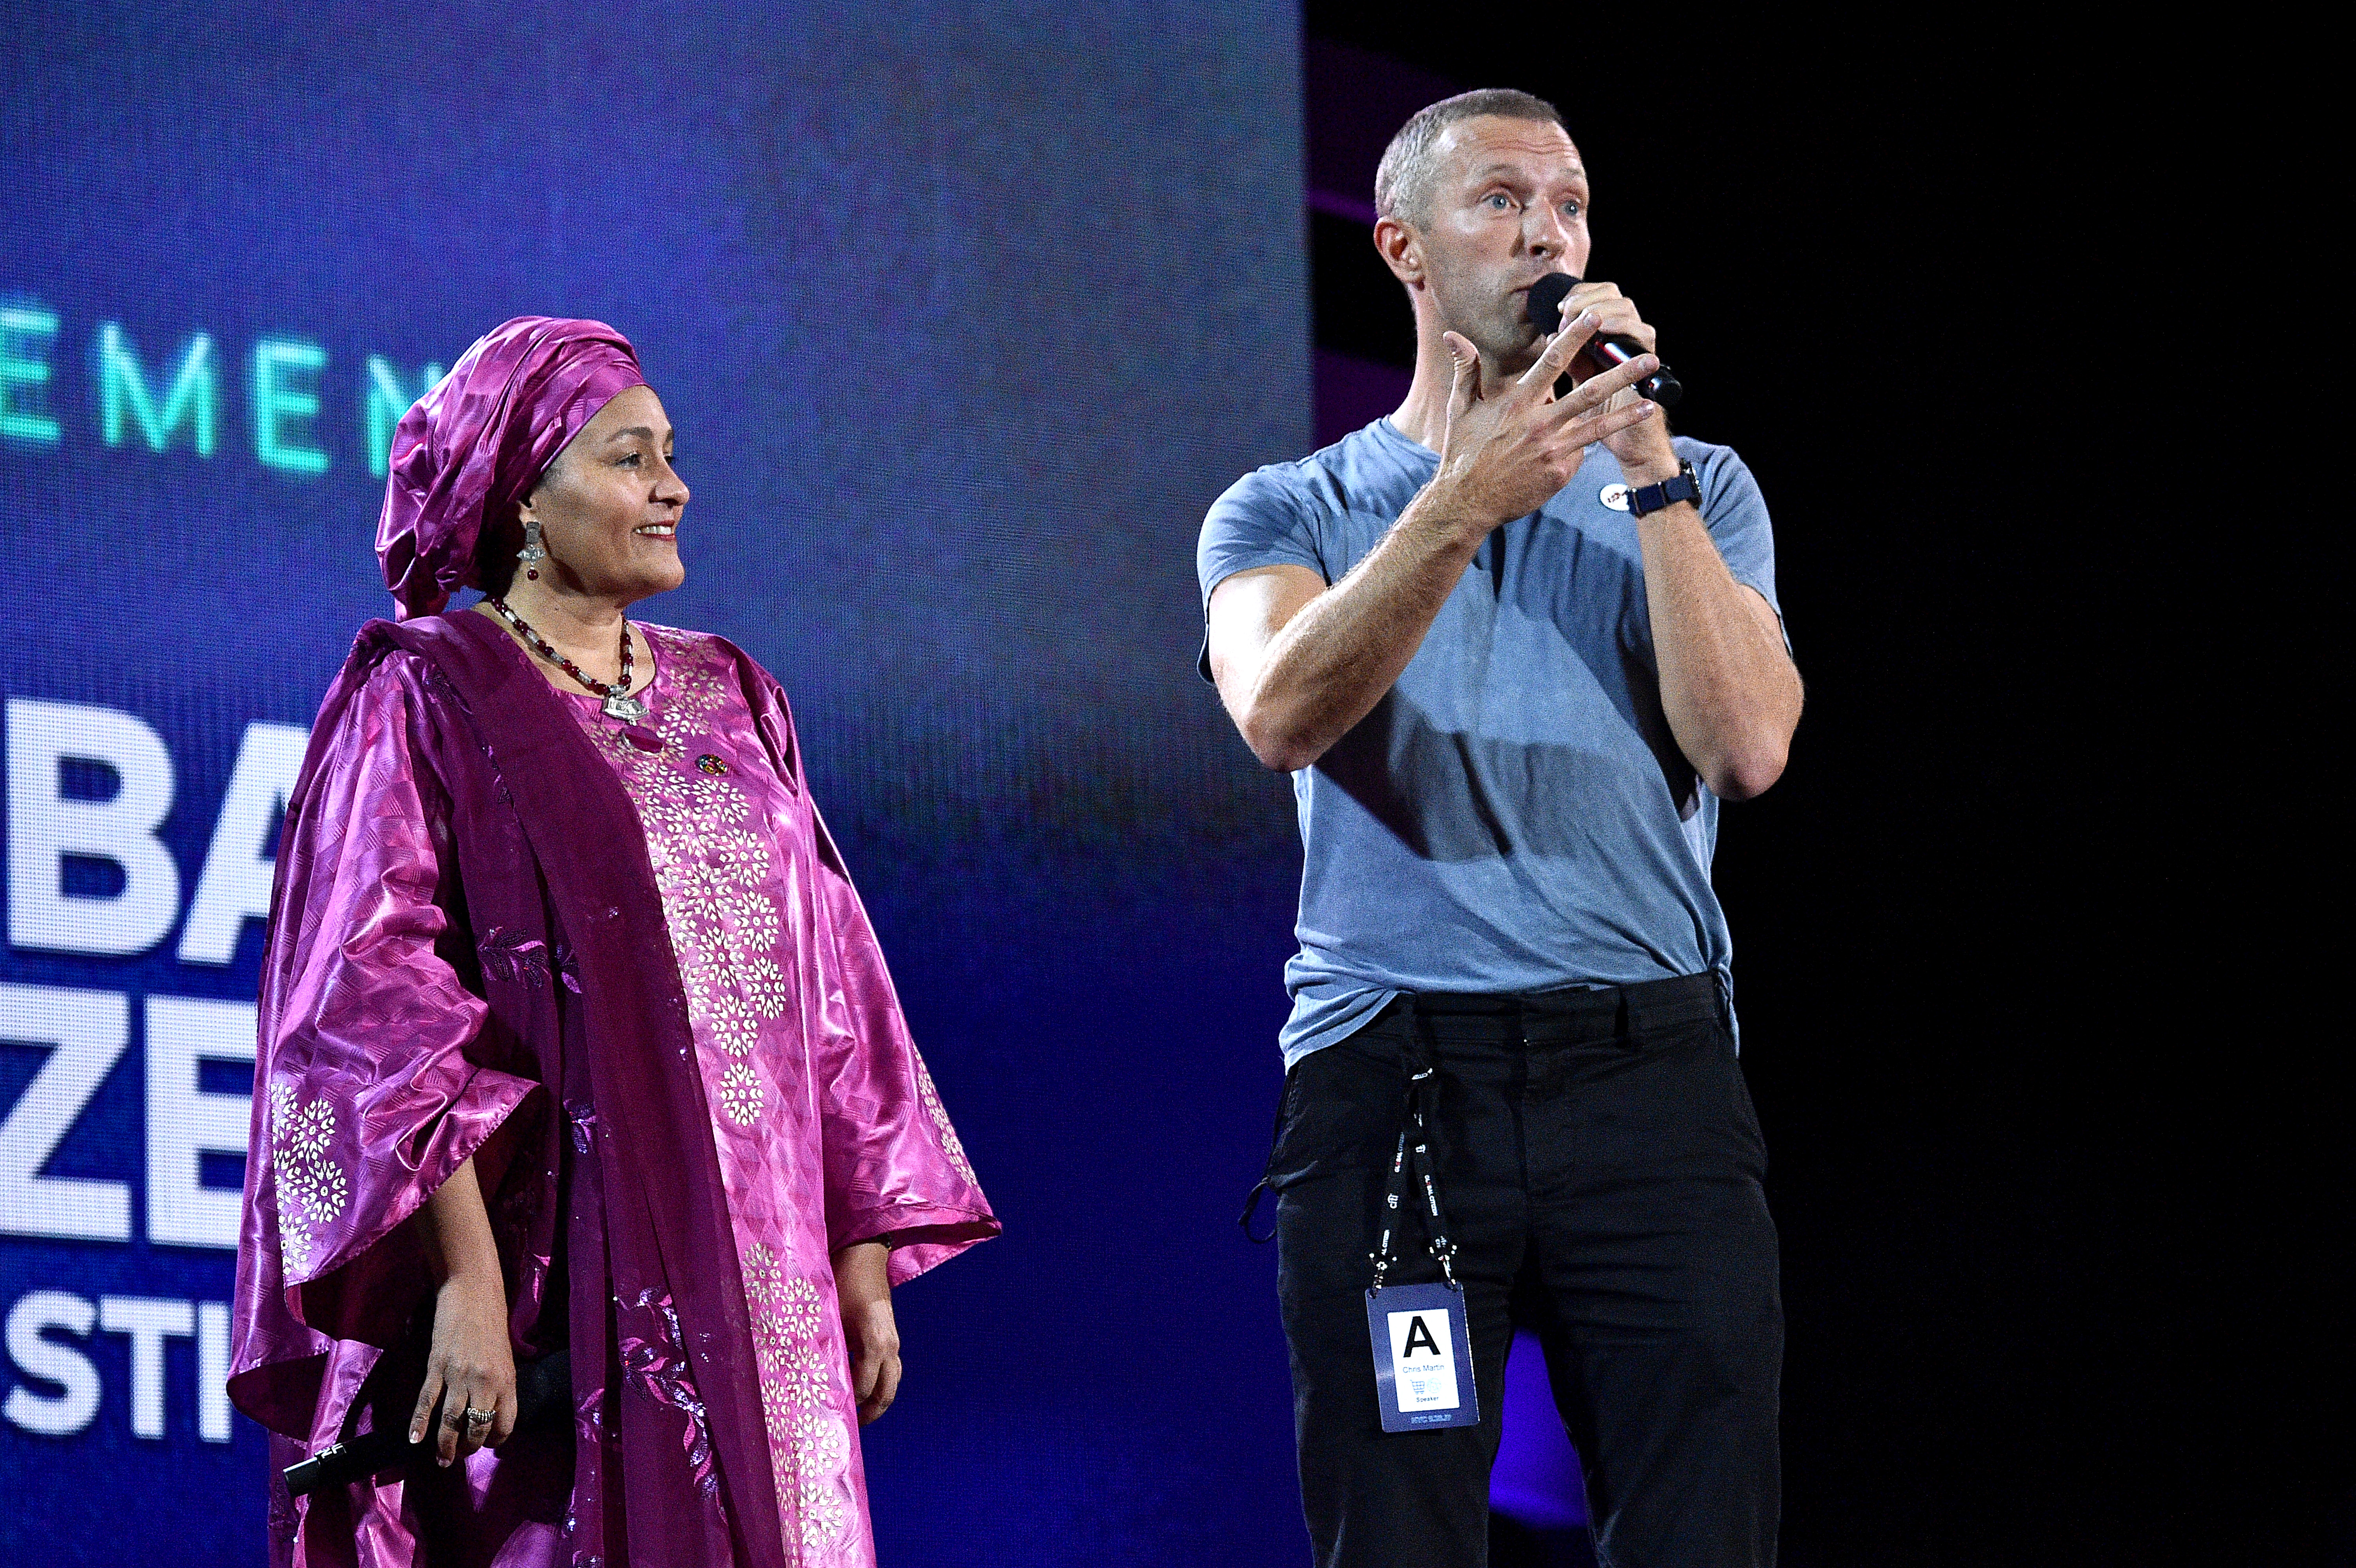 NEW YORK, NEW YORK - SEPTEMBER 28: Amina Mohammed (L) and Chris Martin speak onstage during the 2019 Global Citizen Festival: Power The Movement in Central Park on September 28, 2019 in New York City. (Photo by Theo Wargo/Getty Images for Global Citizen)